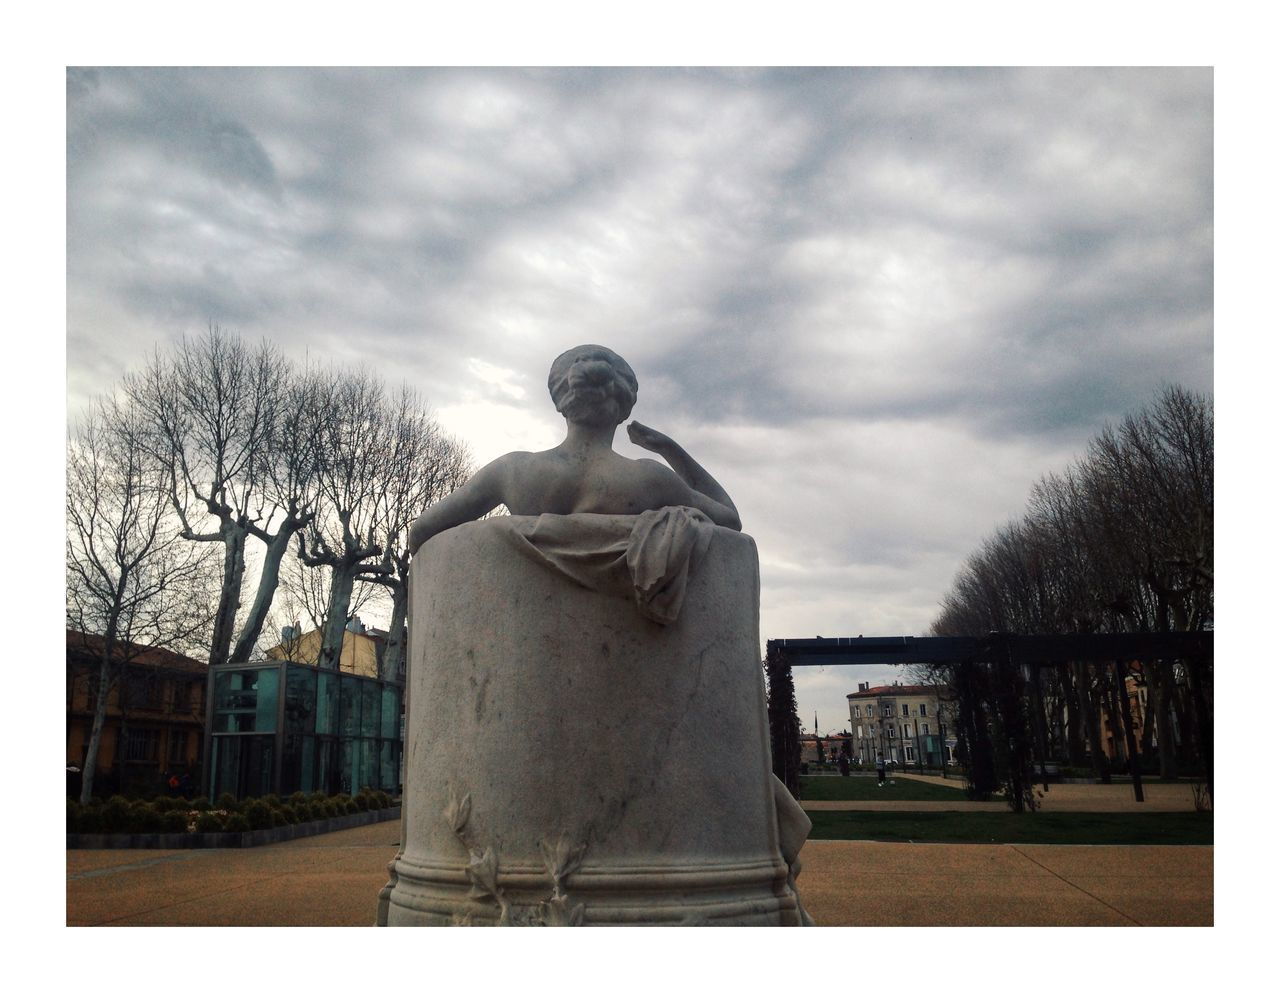 sculpture, cloud - sky, statue, human representation, sky, art and craft, auto post production filter, representation, transfer print, architecture, male likeness, creativity, built structure, tree, nature, day, no people, plant, female likeness, travel destinations, outdoors